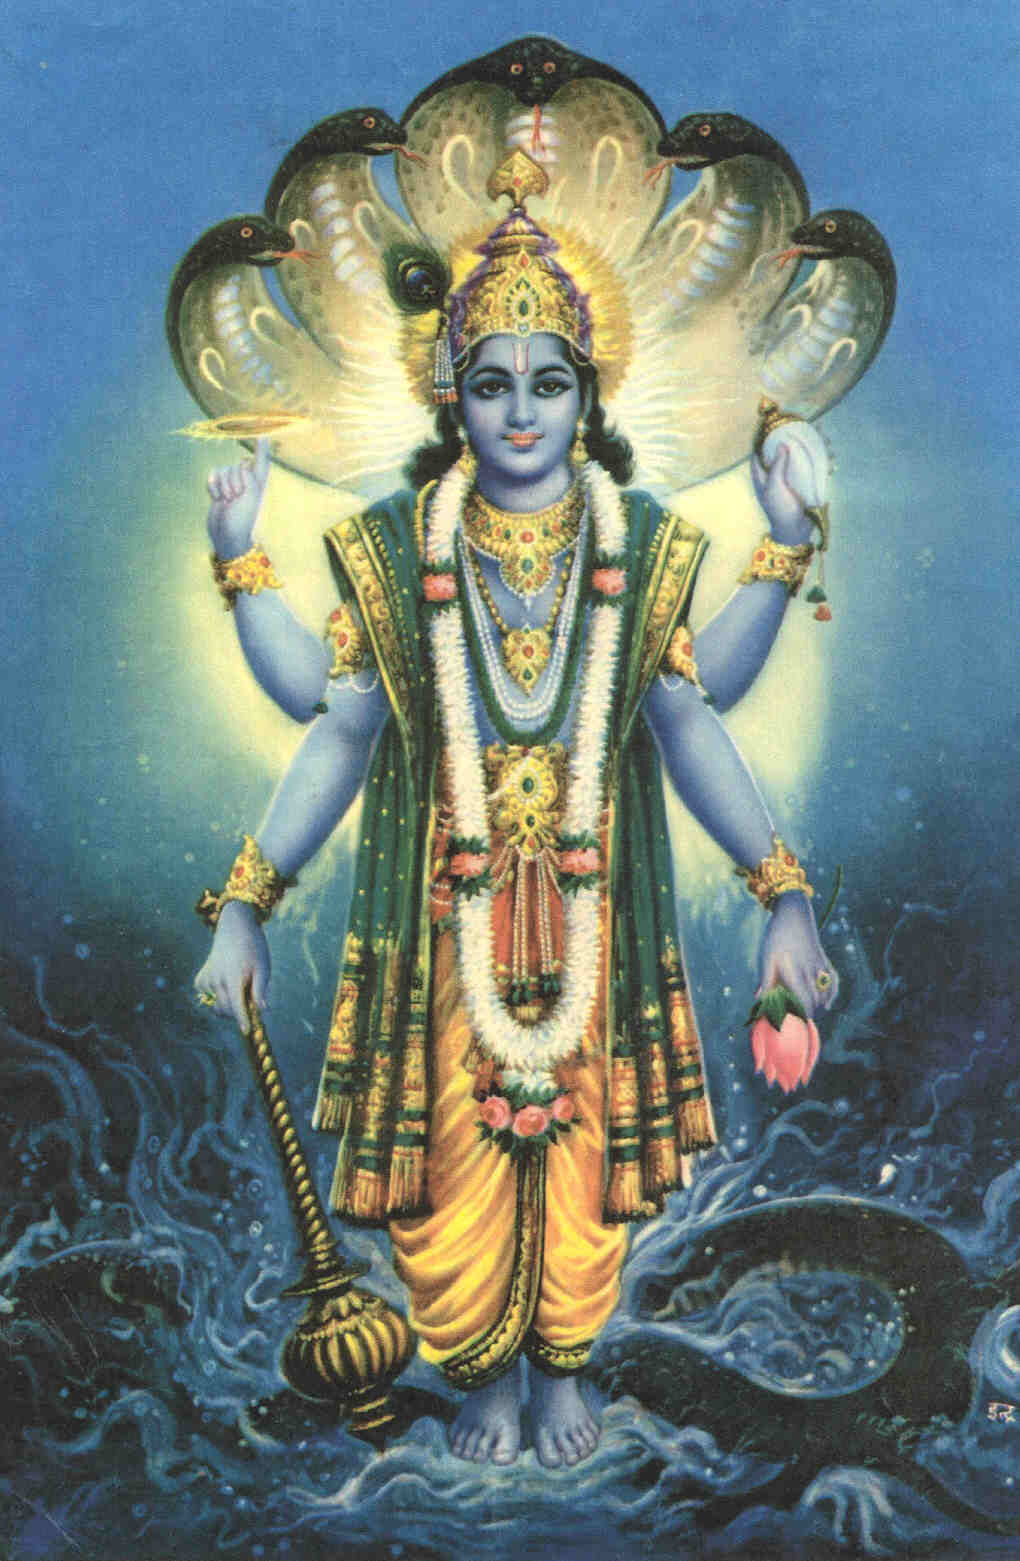 Vishnu Sahasranamam Stotram Lyrics 1000 Names Hindu Devotional Blog